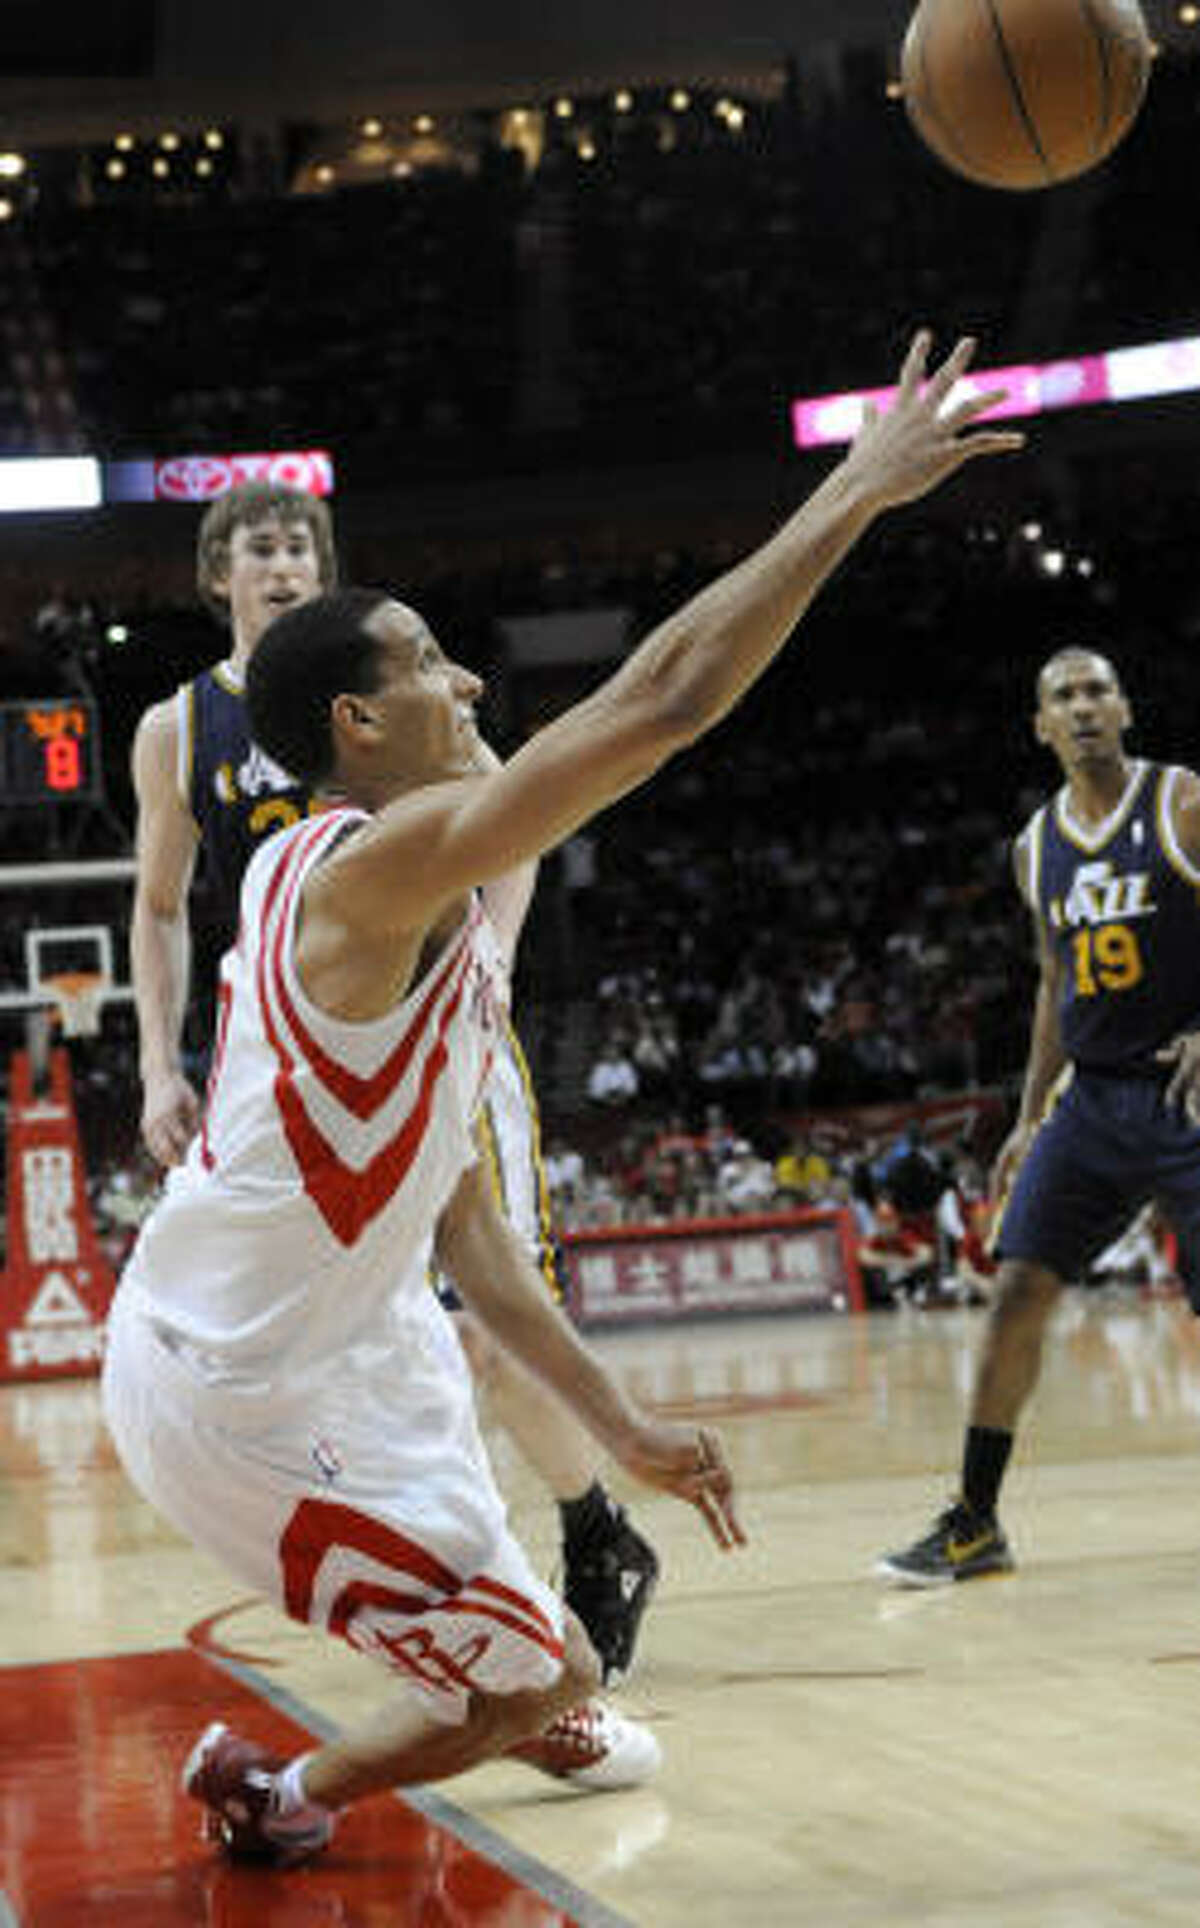 Rockets shooting guard Kevin Martin, foreground, loses his balance after being fouled by Jazz forward Gordon Hayward, back, as Utah's Raja Bell (19) looks on.